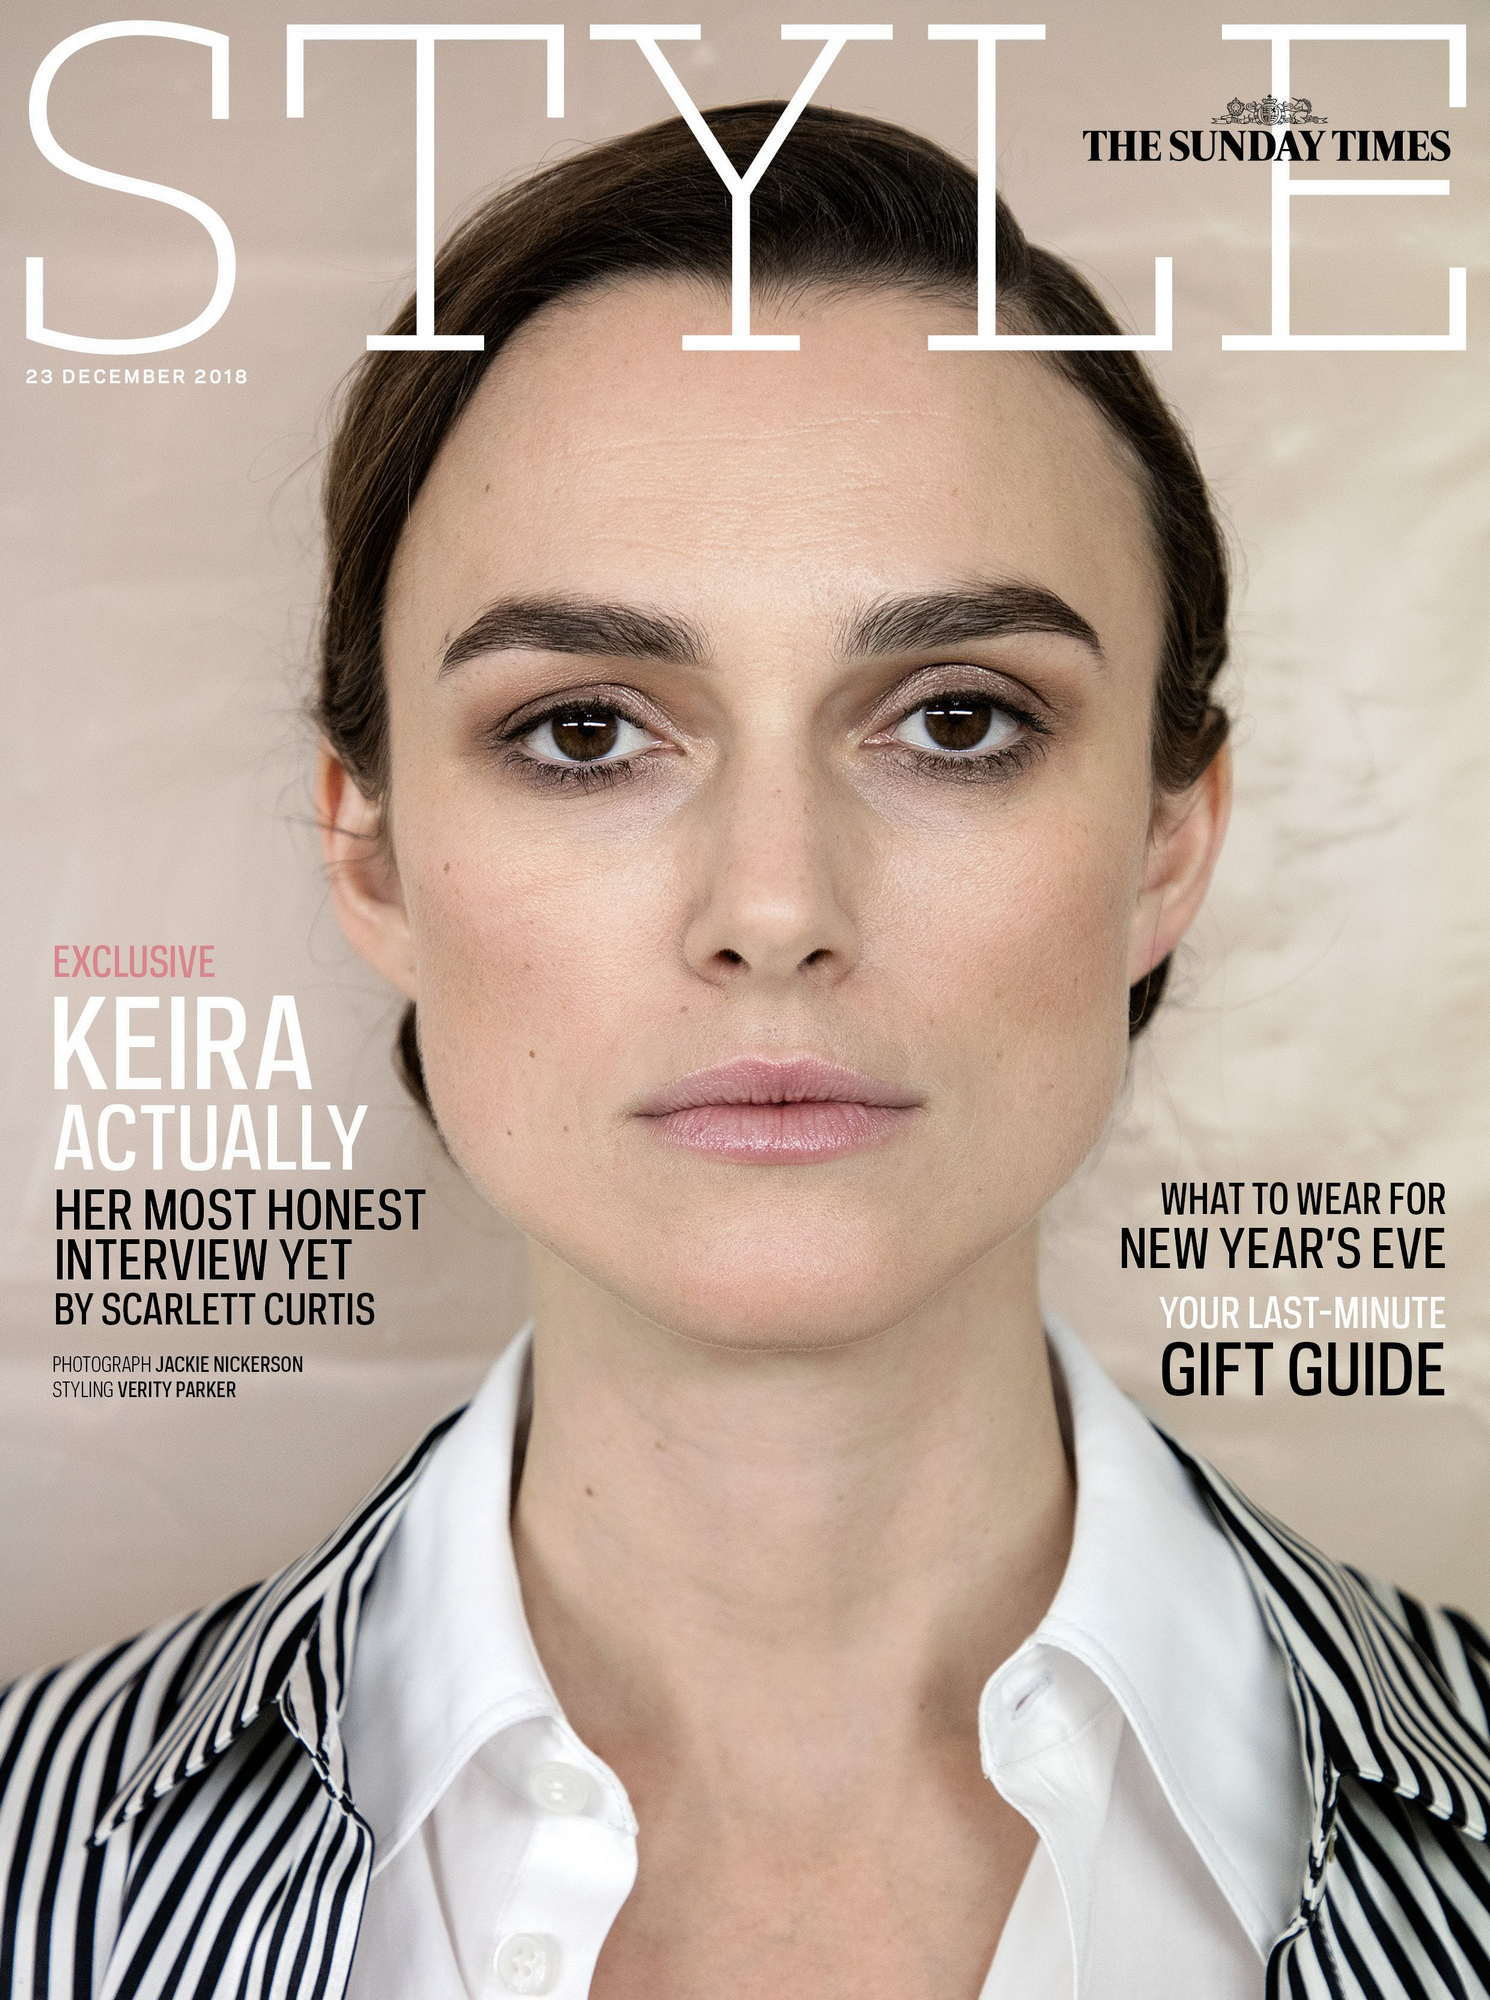 Keira-Knightley-Jackie-Nickerson-for-The-Sunday-Times-Style-December-23-20184.jpg